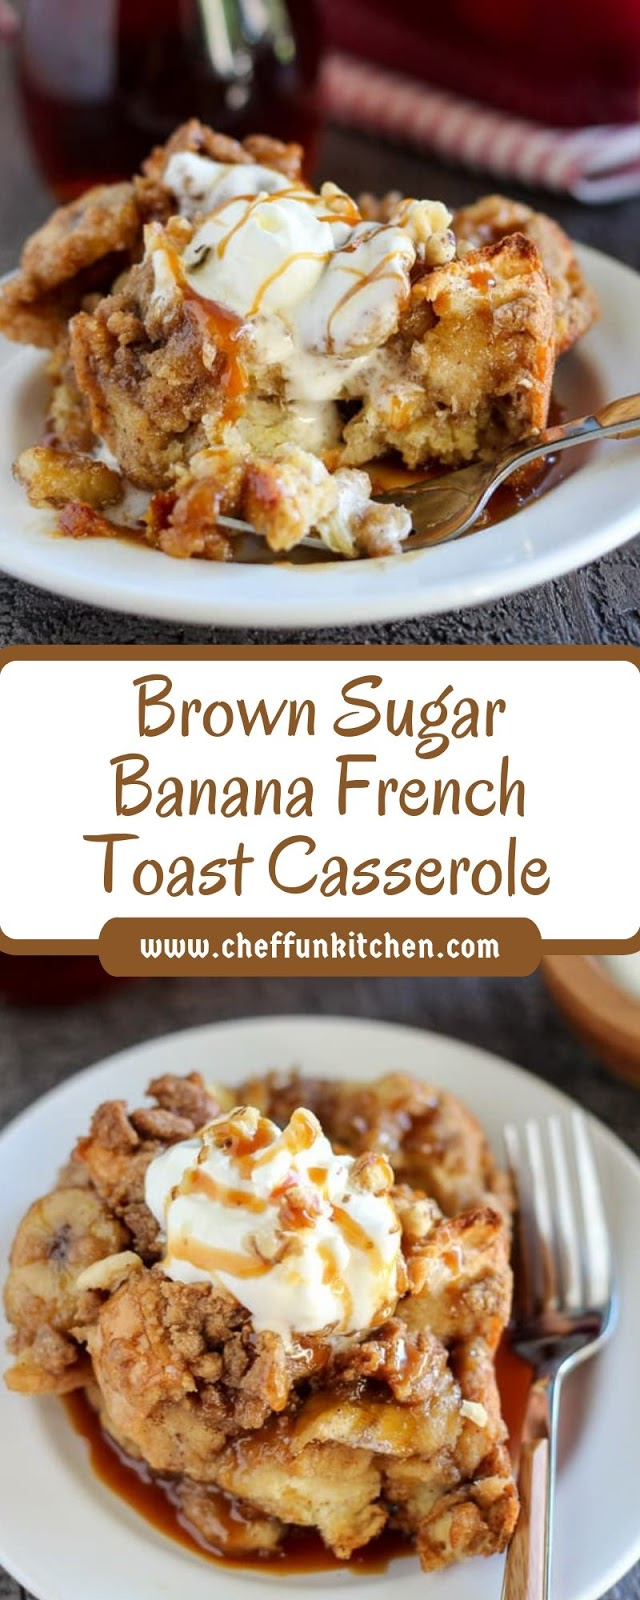 Brown Sugar Banana French Toast Casserole